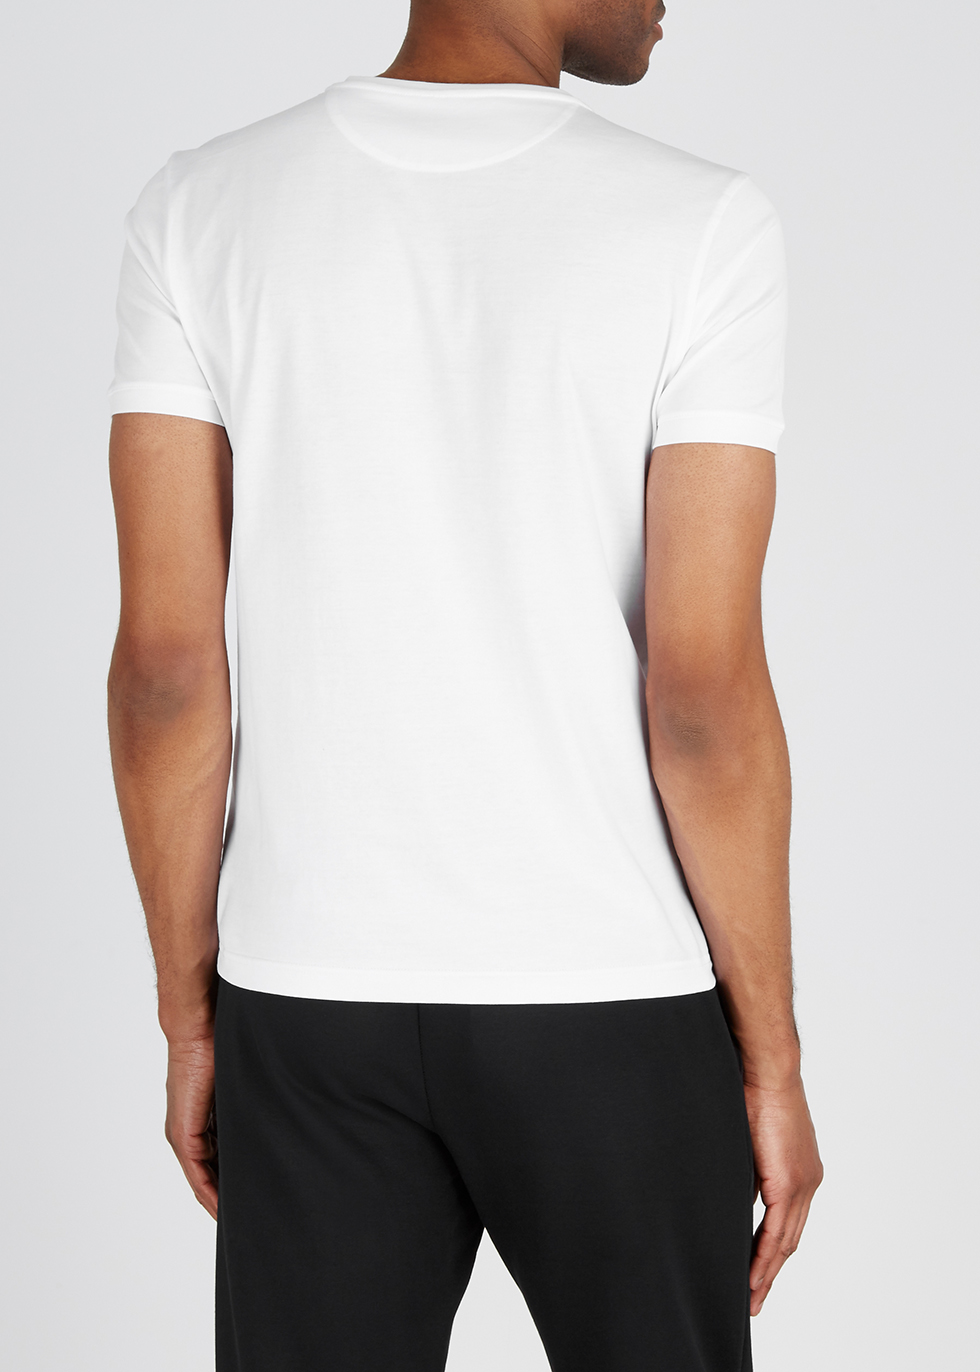 White cotton T-shirt - Fendi